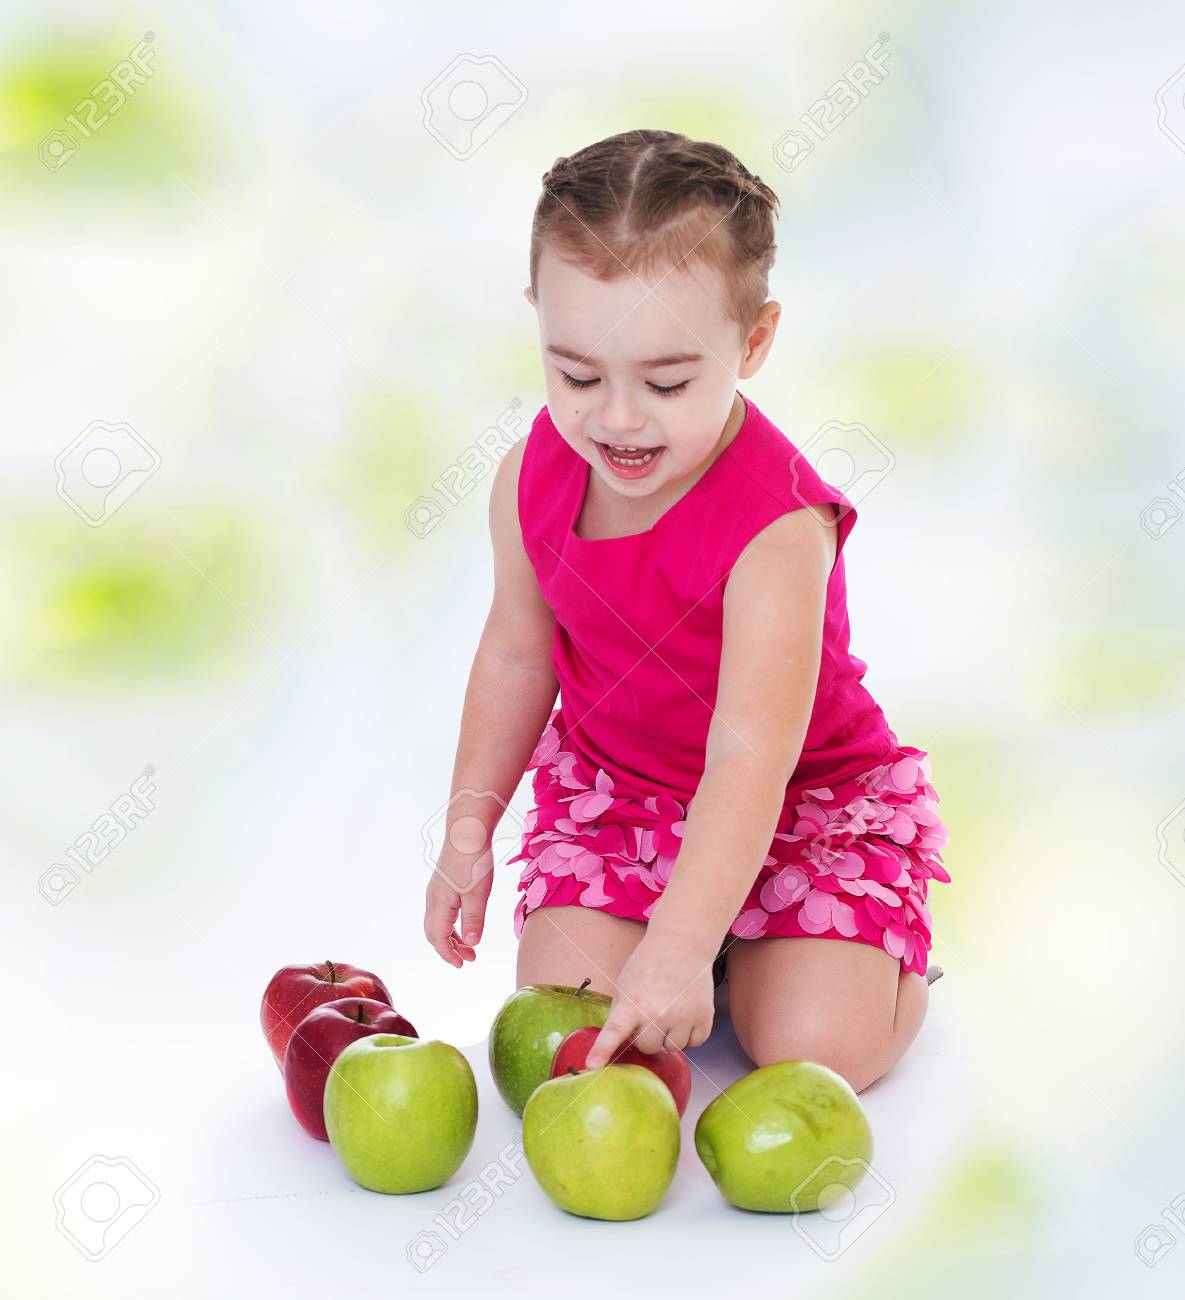 4eb093b3e3a Charming little girl in a red dress pointing at a green apple.Concept of  childhood